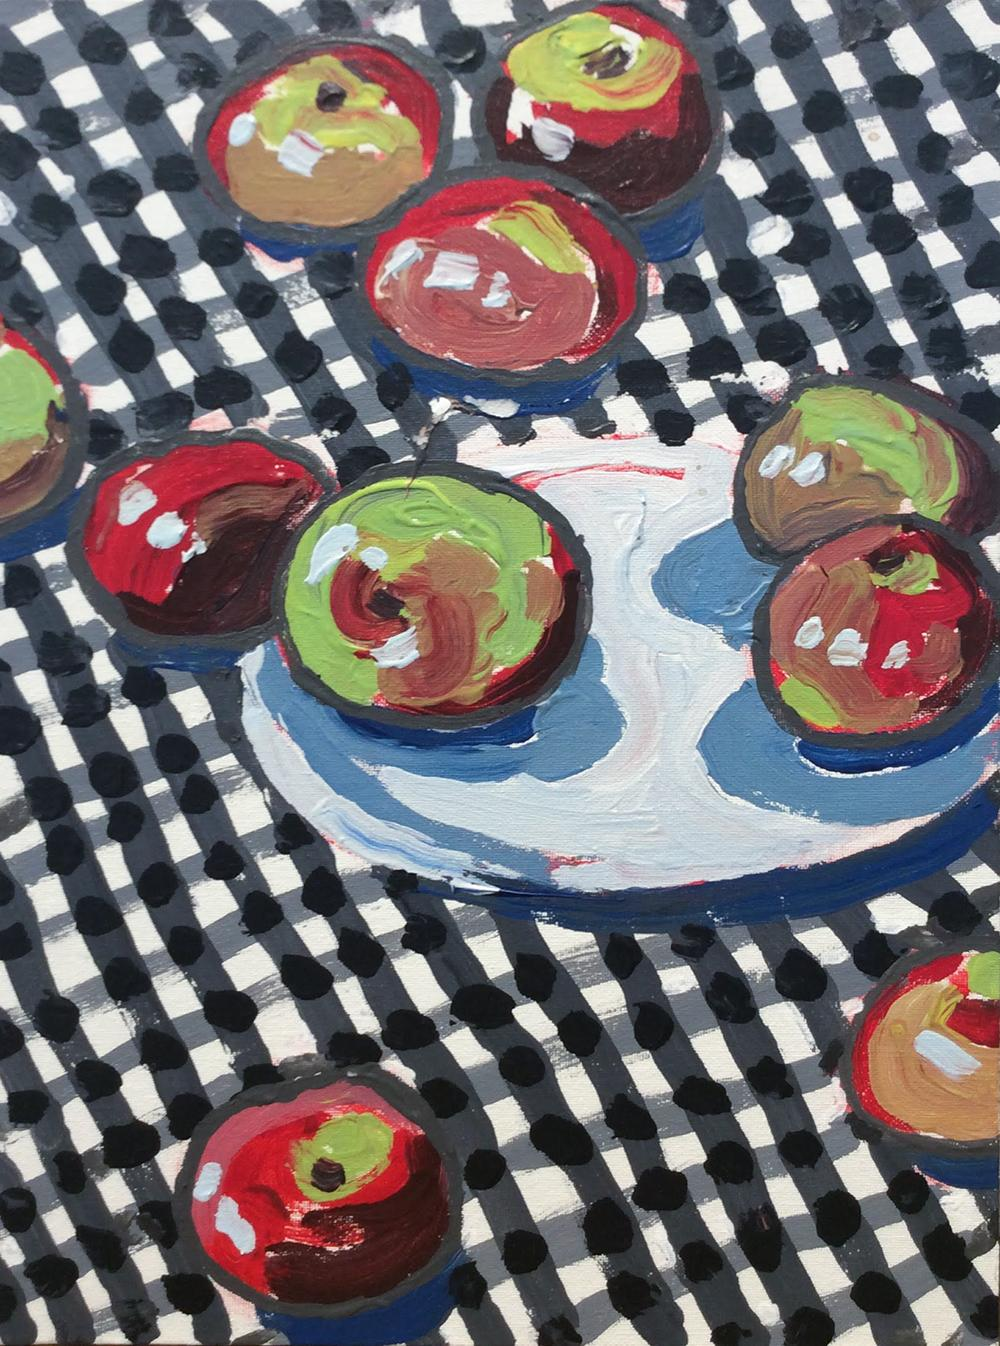 Apples and Plate (Fauvist Style Still Life Painting of Apples on Gingham)